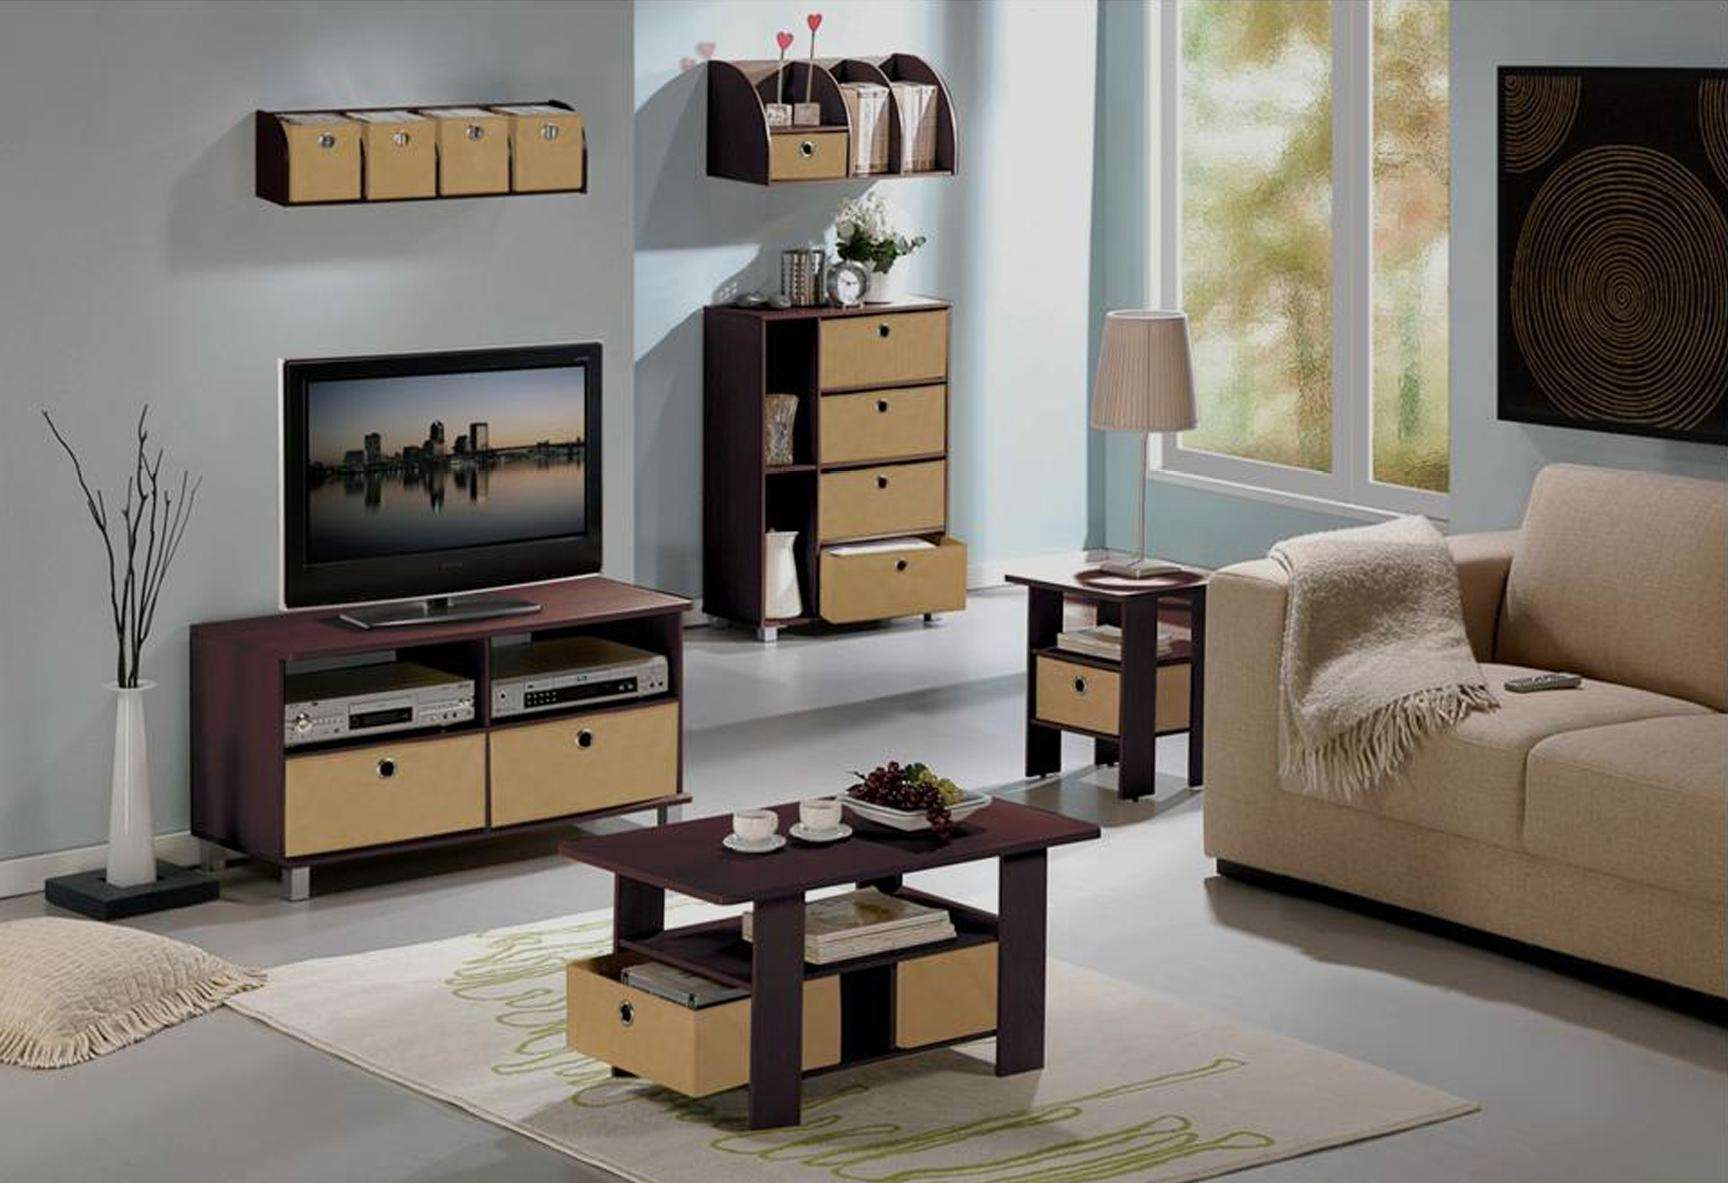 Coffee Table : Cheap Tv Stand And Coffee Table Sets End Setscheap In Tv Stands Coffee Table Sets (View 3 of 20)